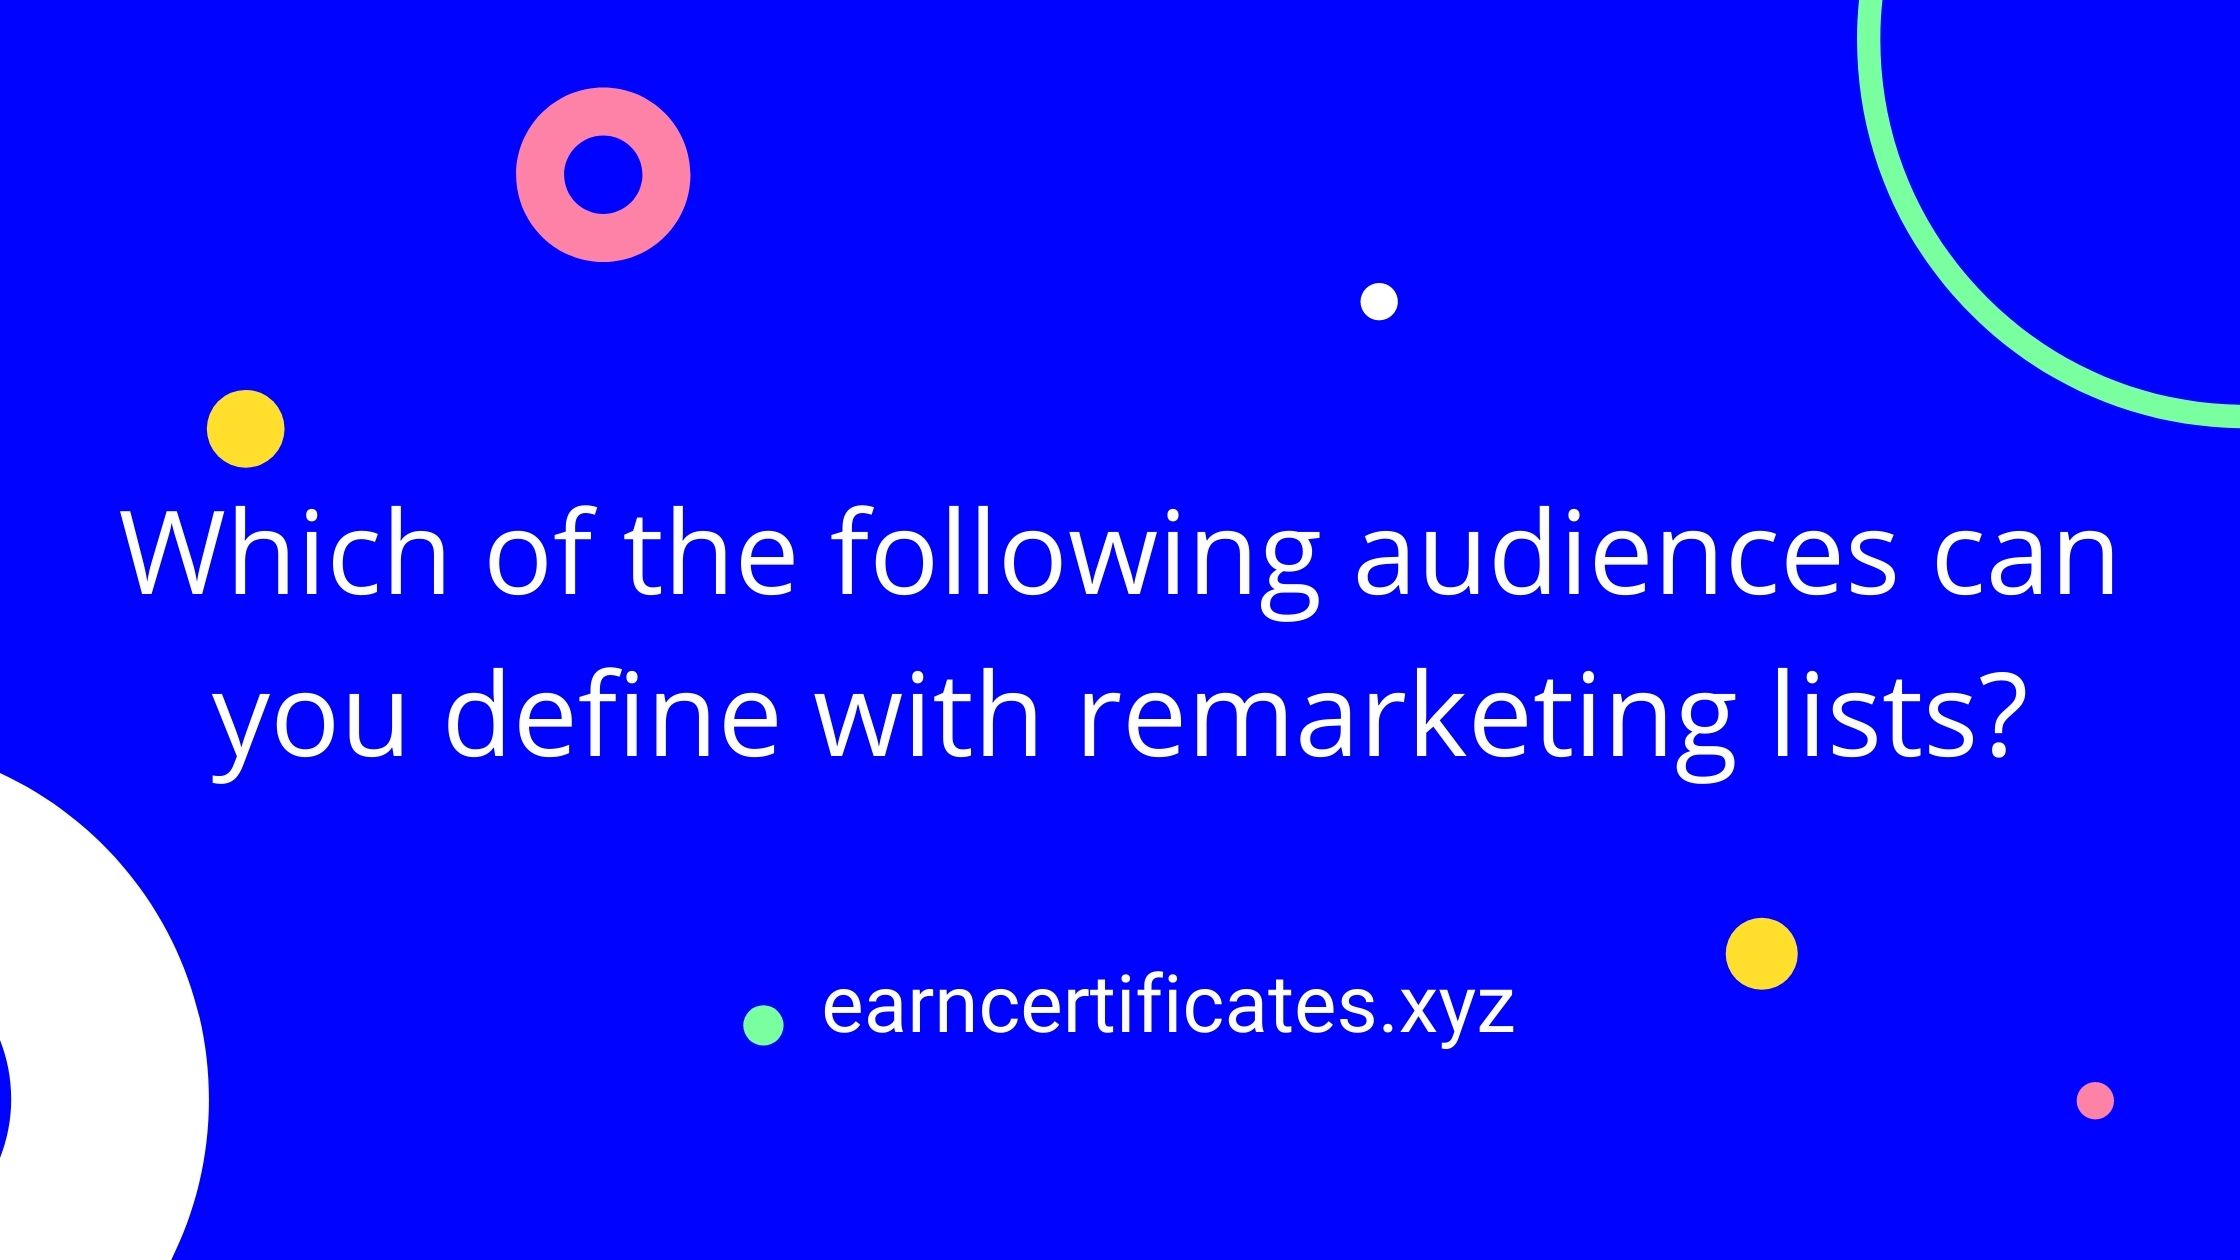 Which of the following audiences can you define with remarketing lists?